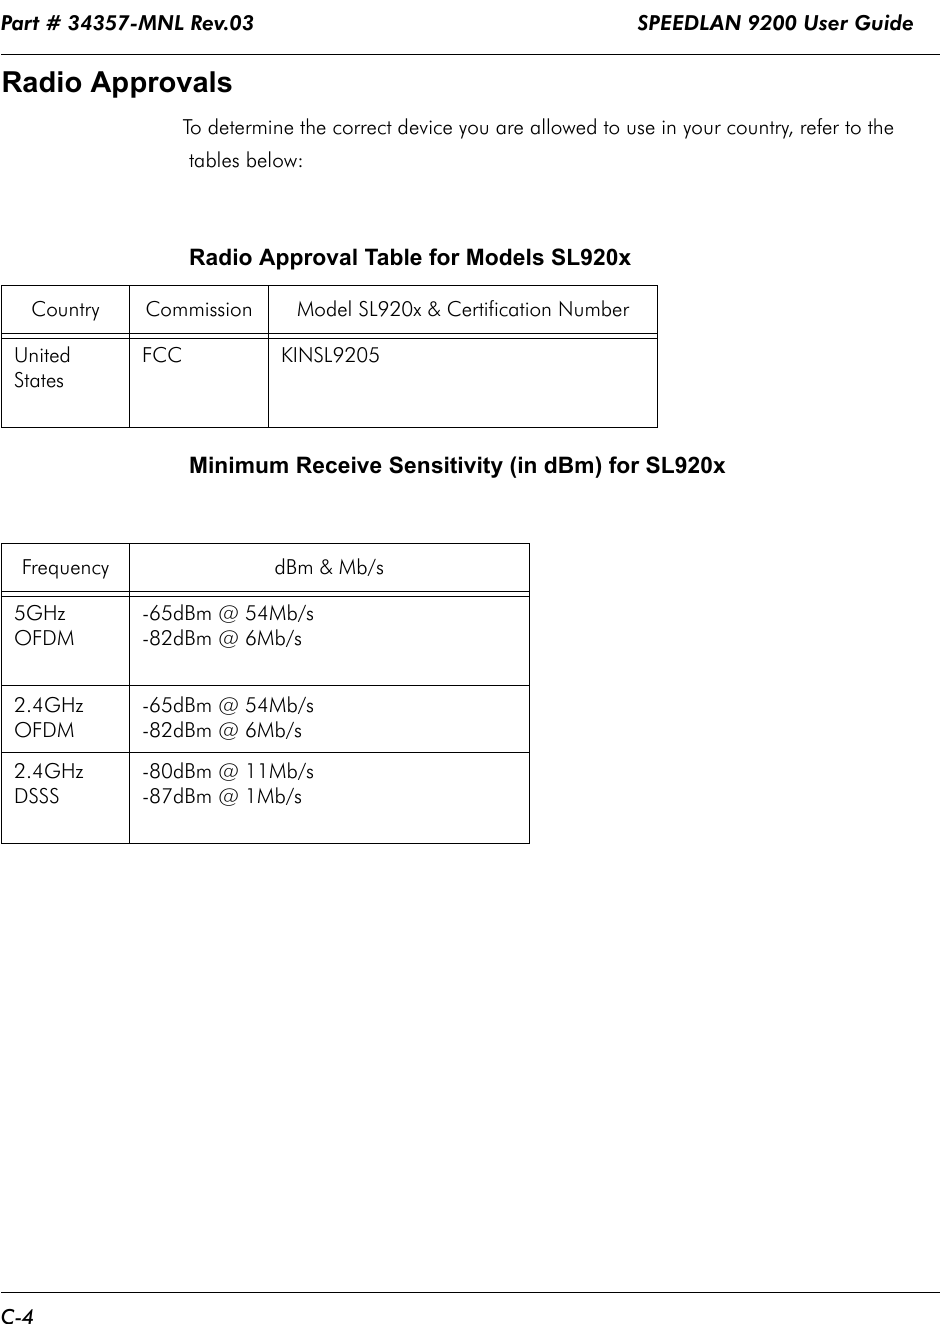 Part # 34357-MNL Rev.03                                                              SPEEDLAN 9200 User Guide C-4Radio ApprovalsTo determine the correct device you are allowed to use in your country, refer to the tables below:Minimum Receive Sensitivity (in dBm) for SL920xRadio Approval Table for Models SL920x Country Commission Model SL920x & Certification NumberUnited StatesFCC  KINSL9205    Frequency dBm & Mb/s5GHz OFDM-65dBm @ 54Mb/s-82dBm @ 6Mb/s2.4GHz OFDM-65dBm @ 54Mb/s-82dBm @ 6Mb/s2.4GHz DSSS-80dBm @ 11Mb/s-87dBm @ 1Mb/s